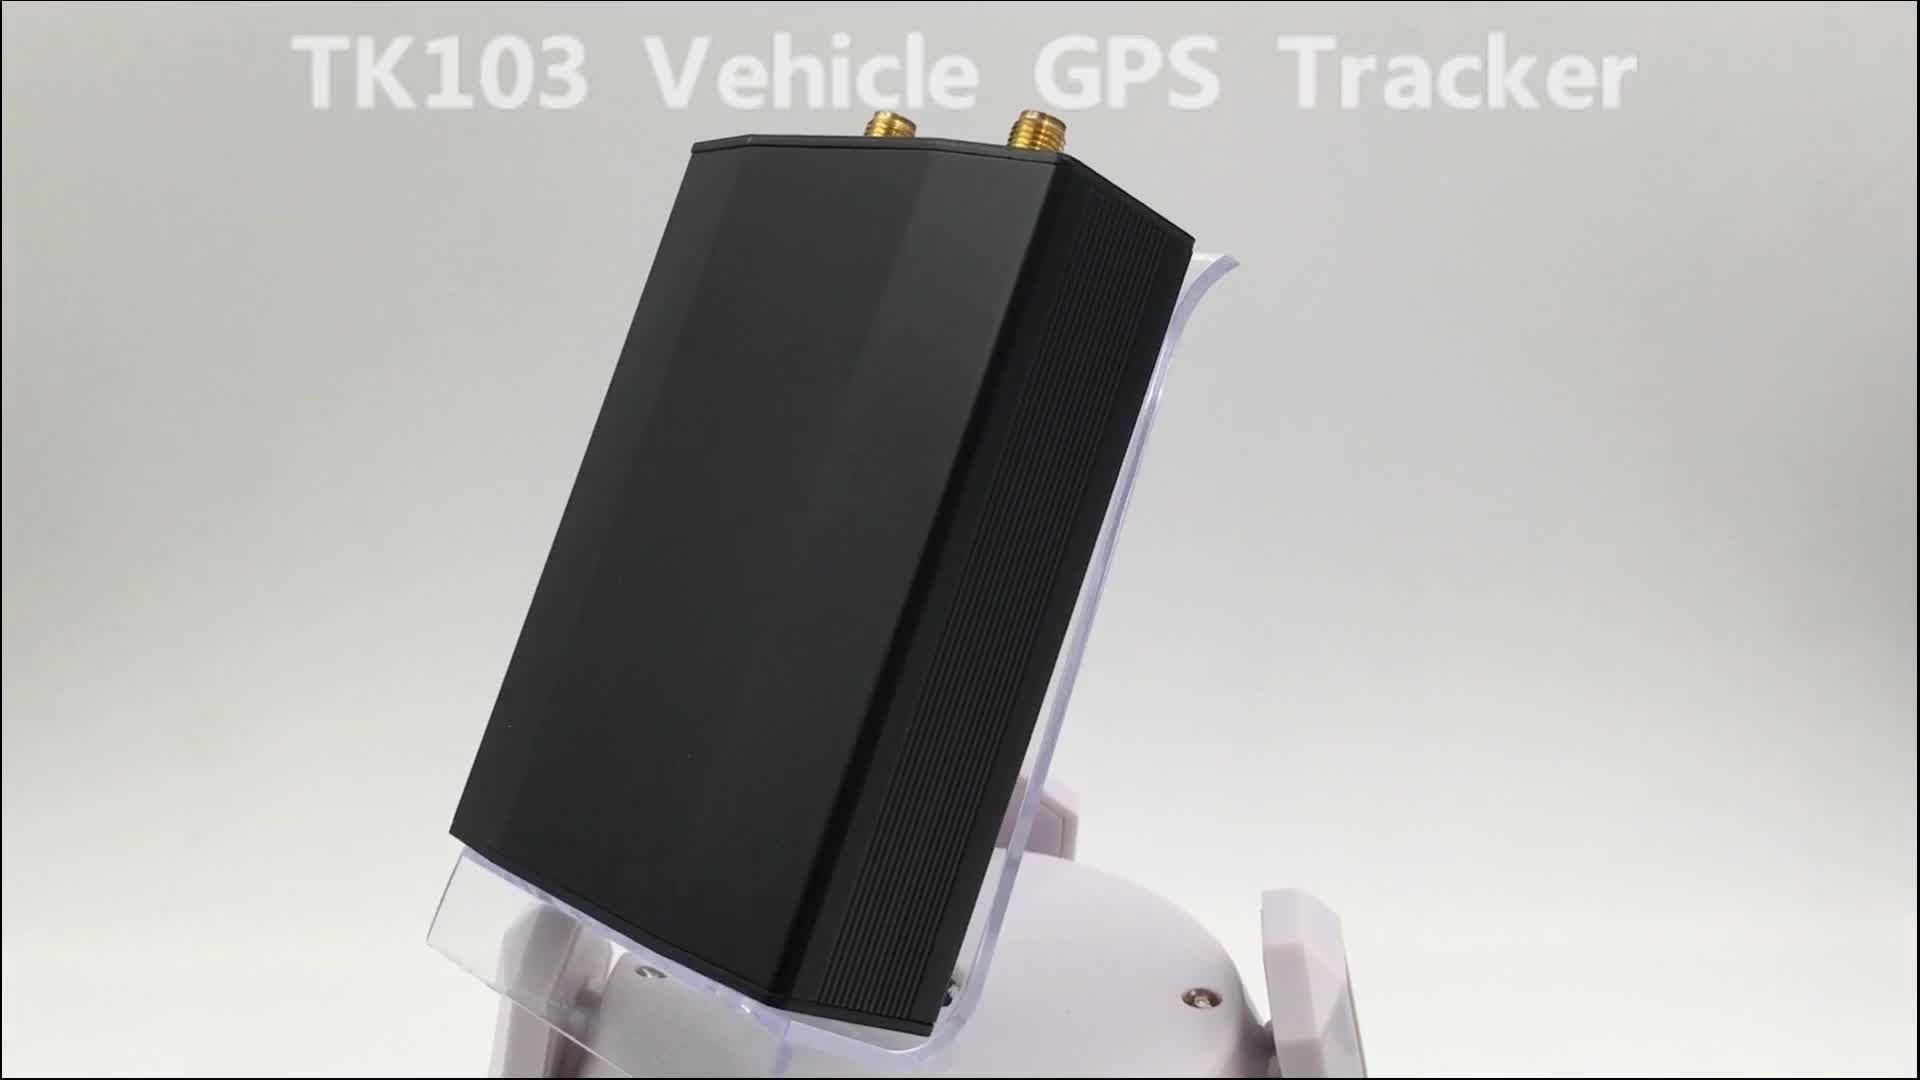 TK103 Real Time GPS Vehicle Tracking Device